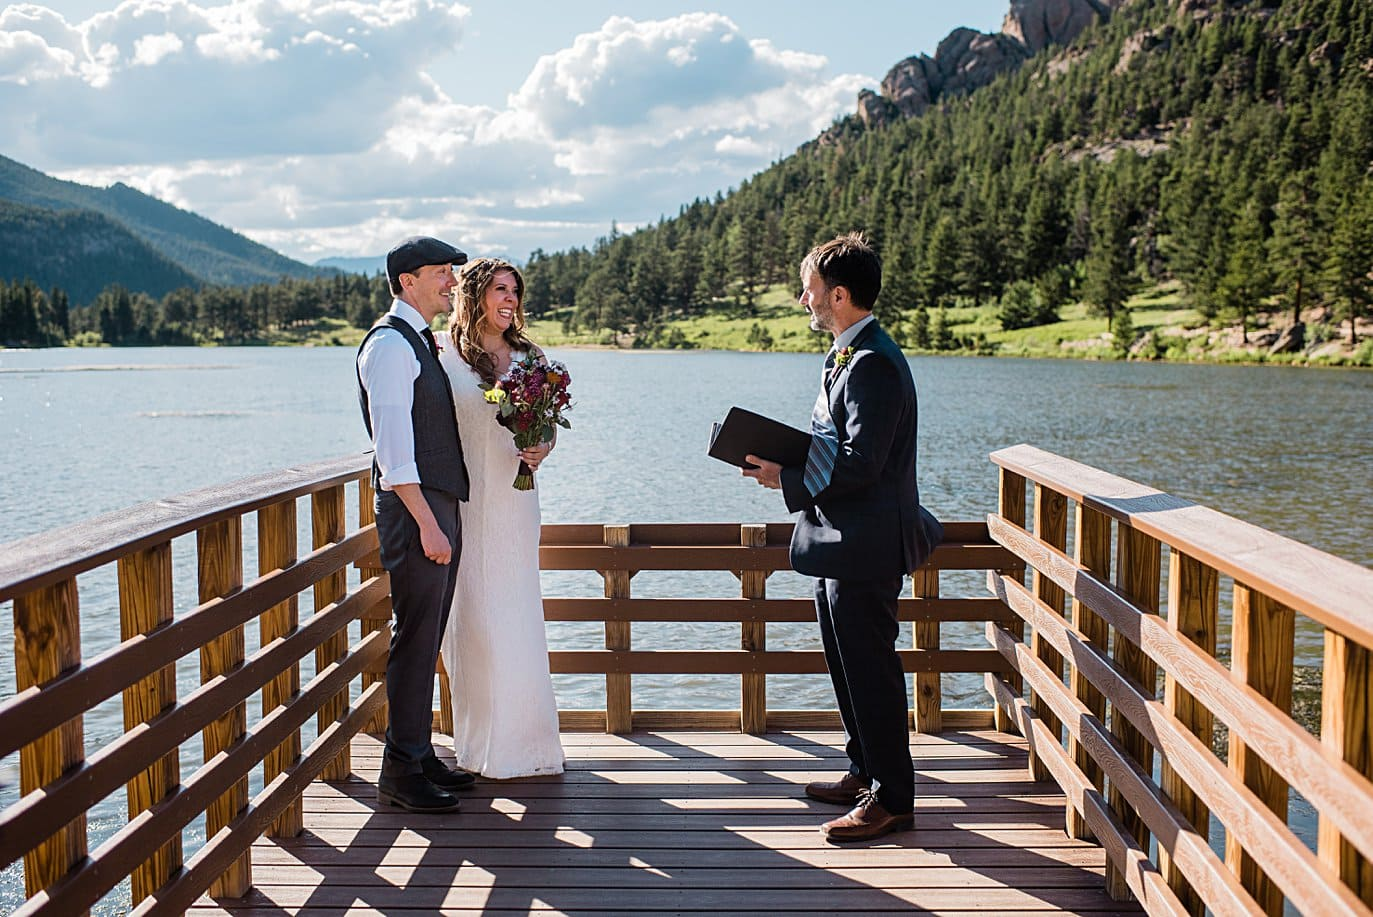 bride and groom say vows at Lily Lake Elopement by Estes Park elopement photographer Jennie Crate